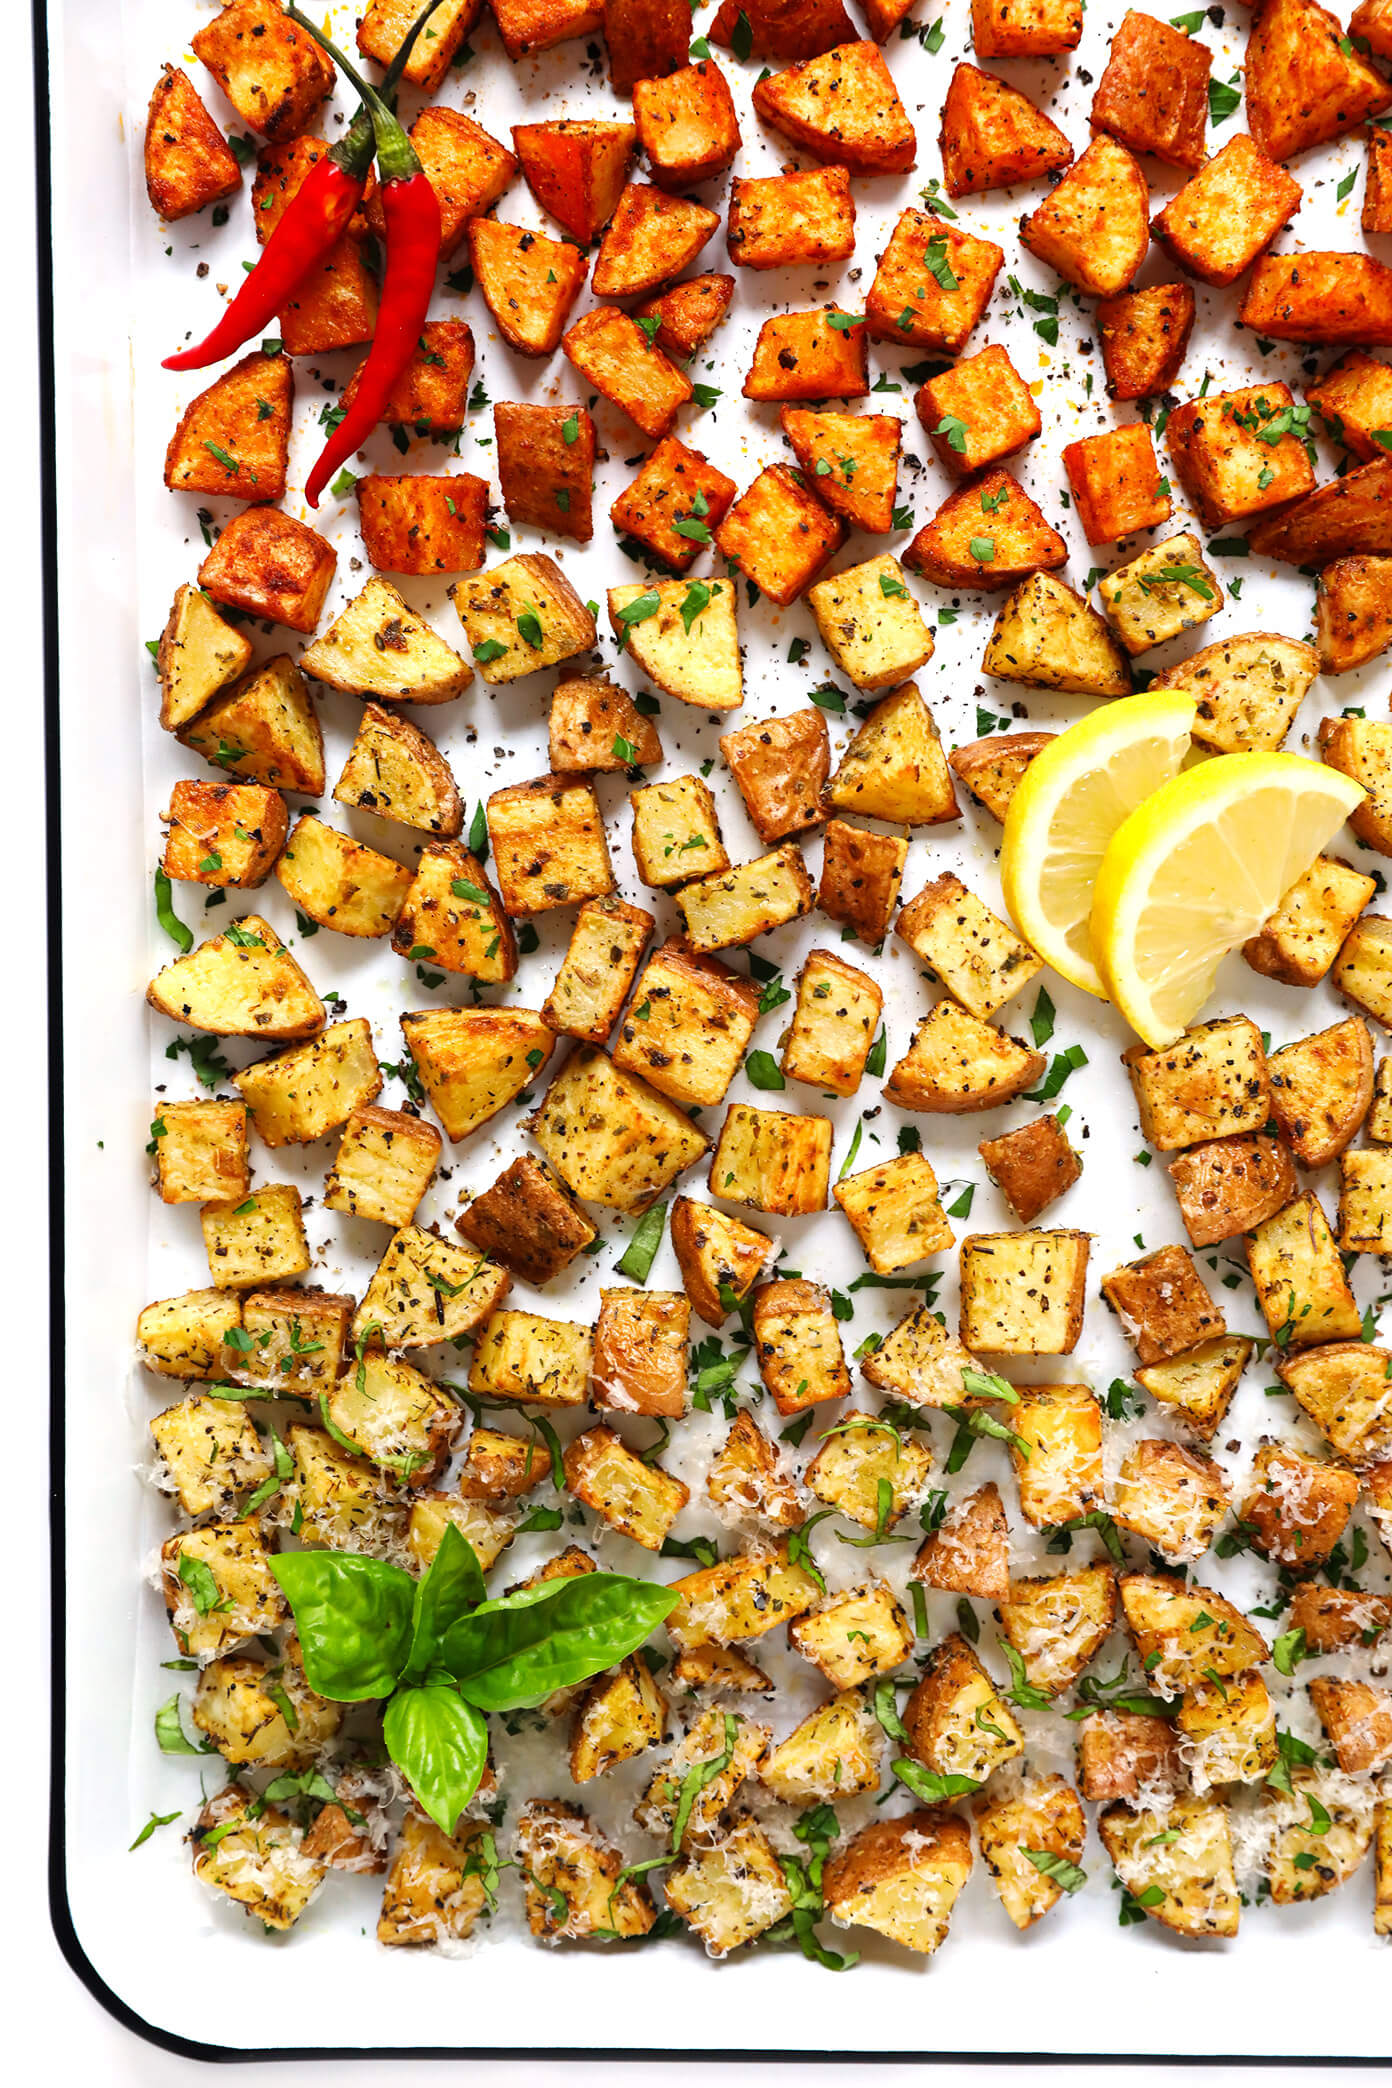 Crispy Roasted Potatoes 3 Ways Gimme Some Oven